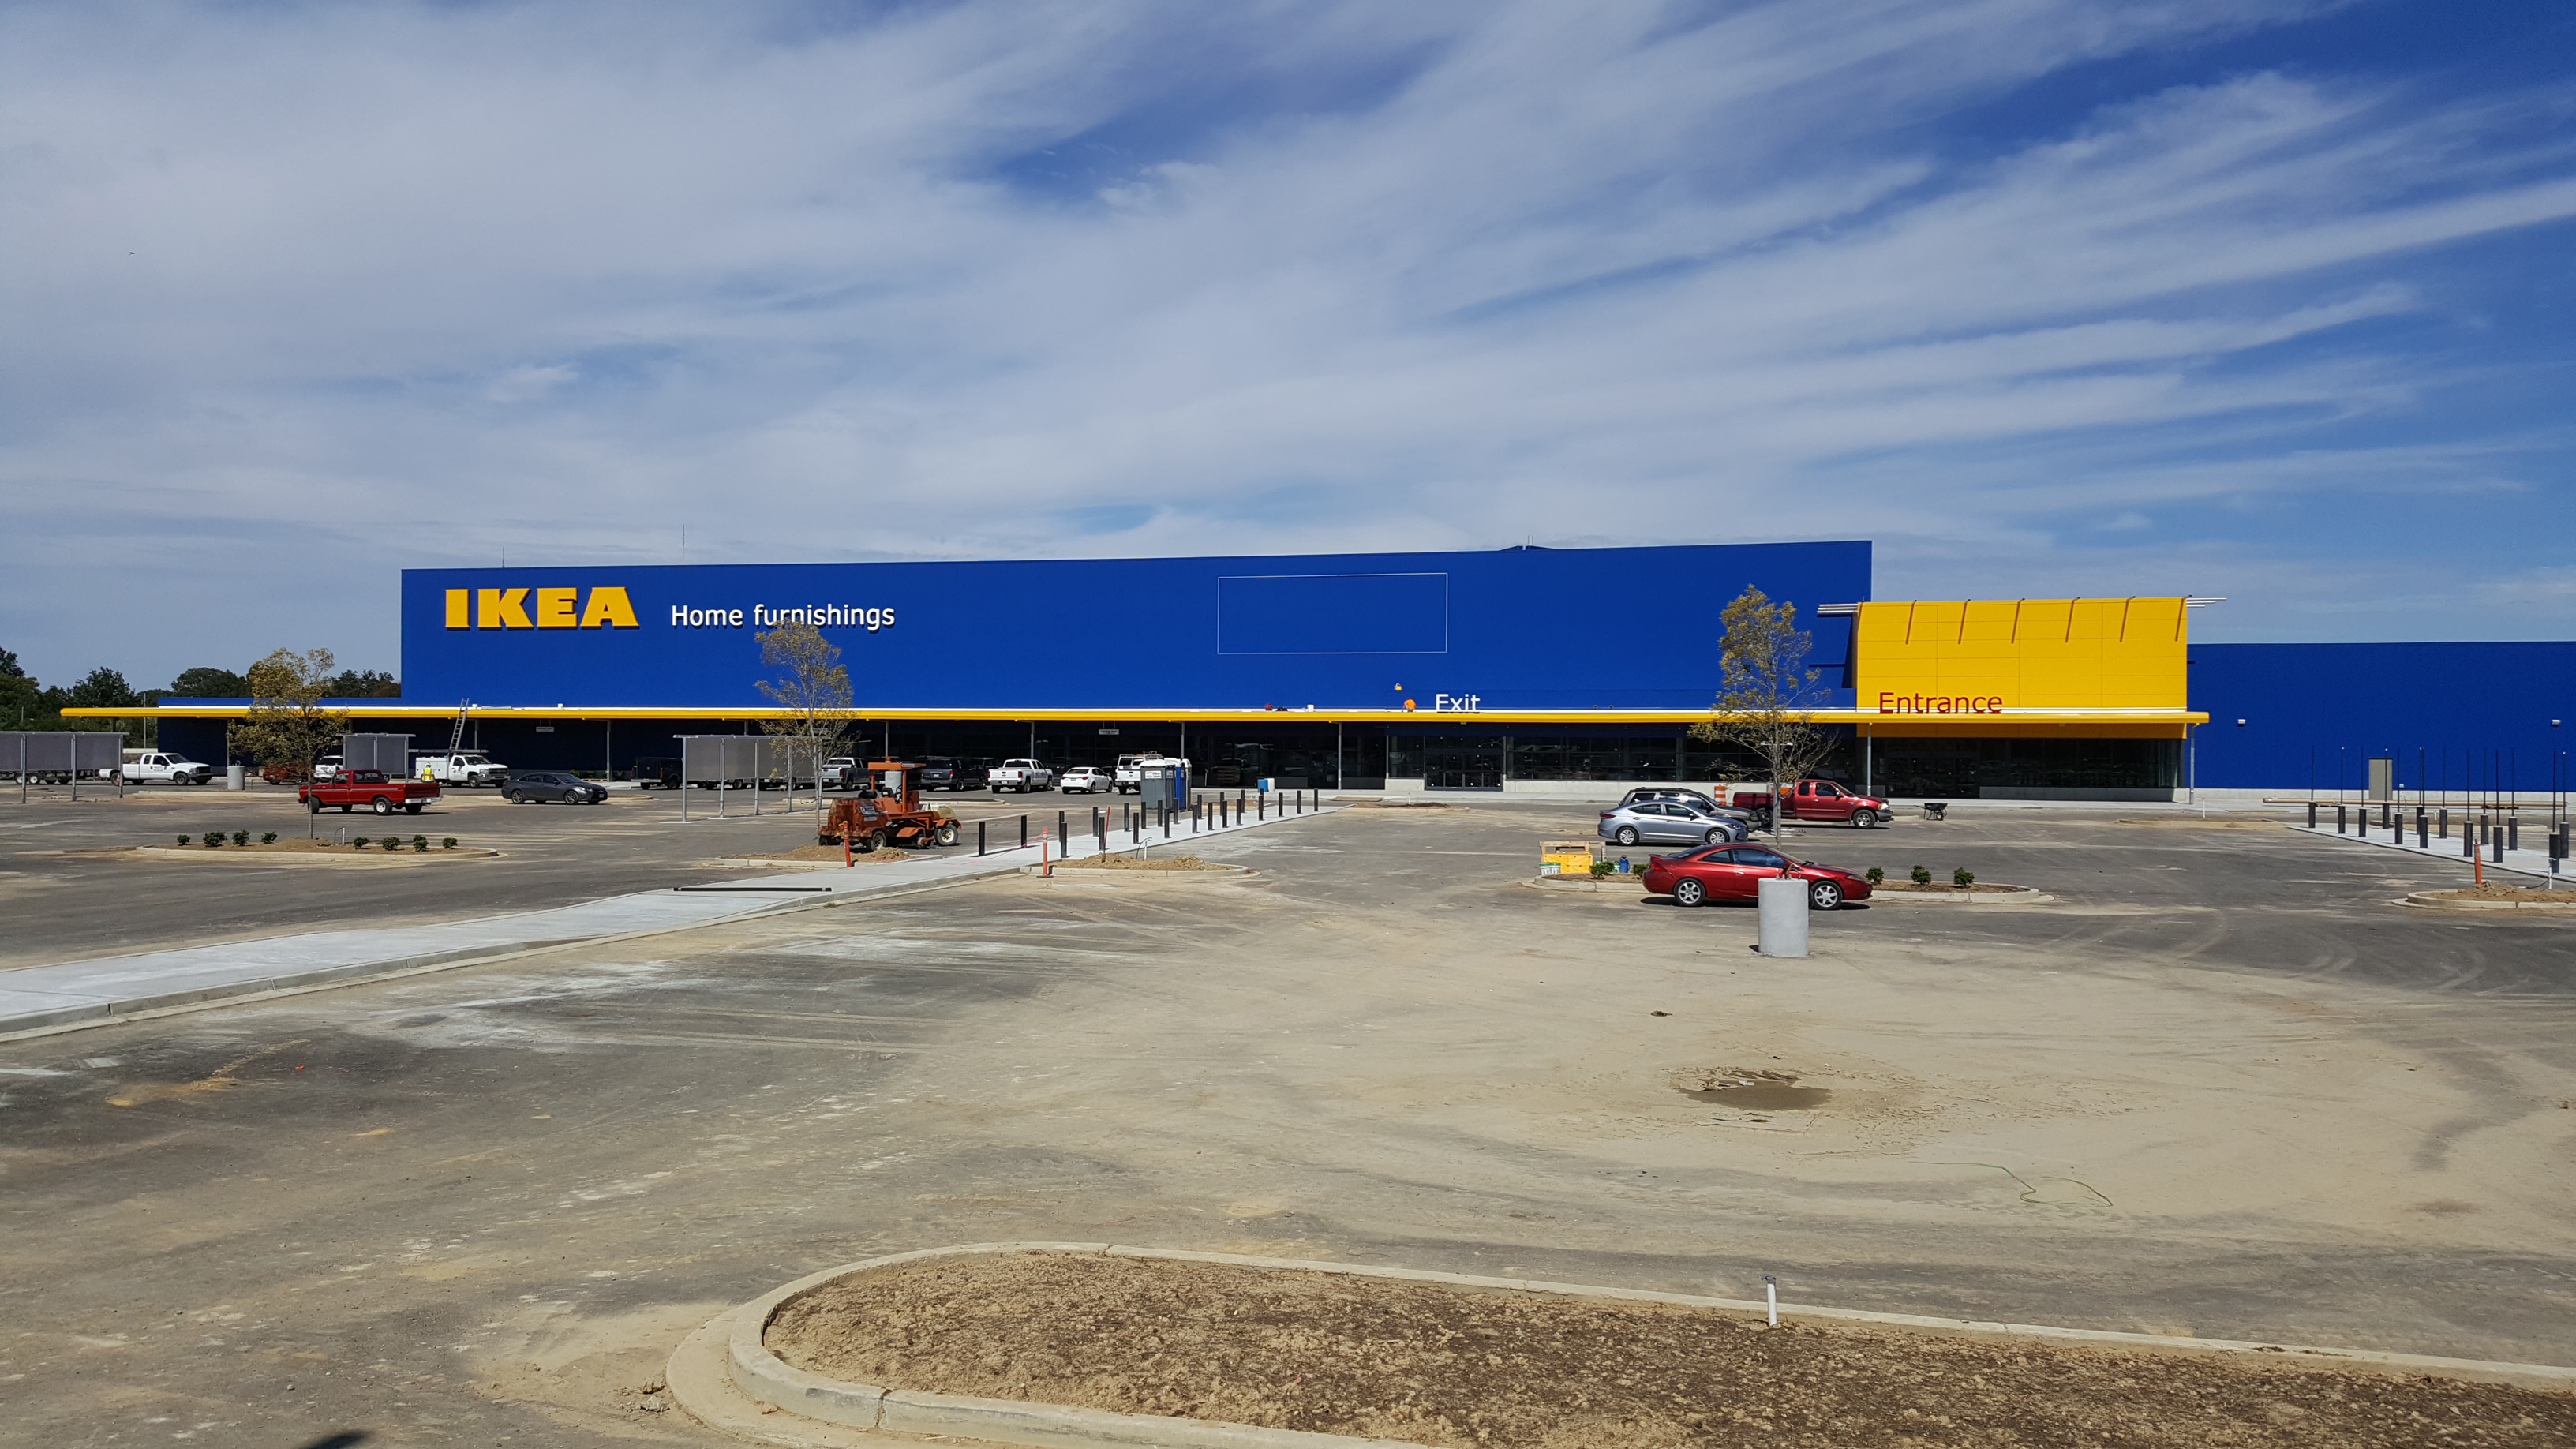 Ikea Frisco Bringing Home Furnishing Solutions To The Mid South Ikea Memphis